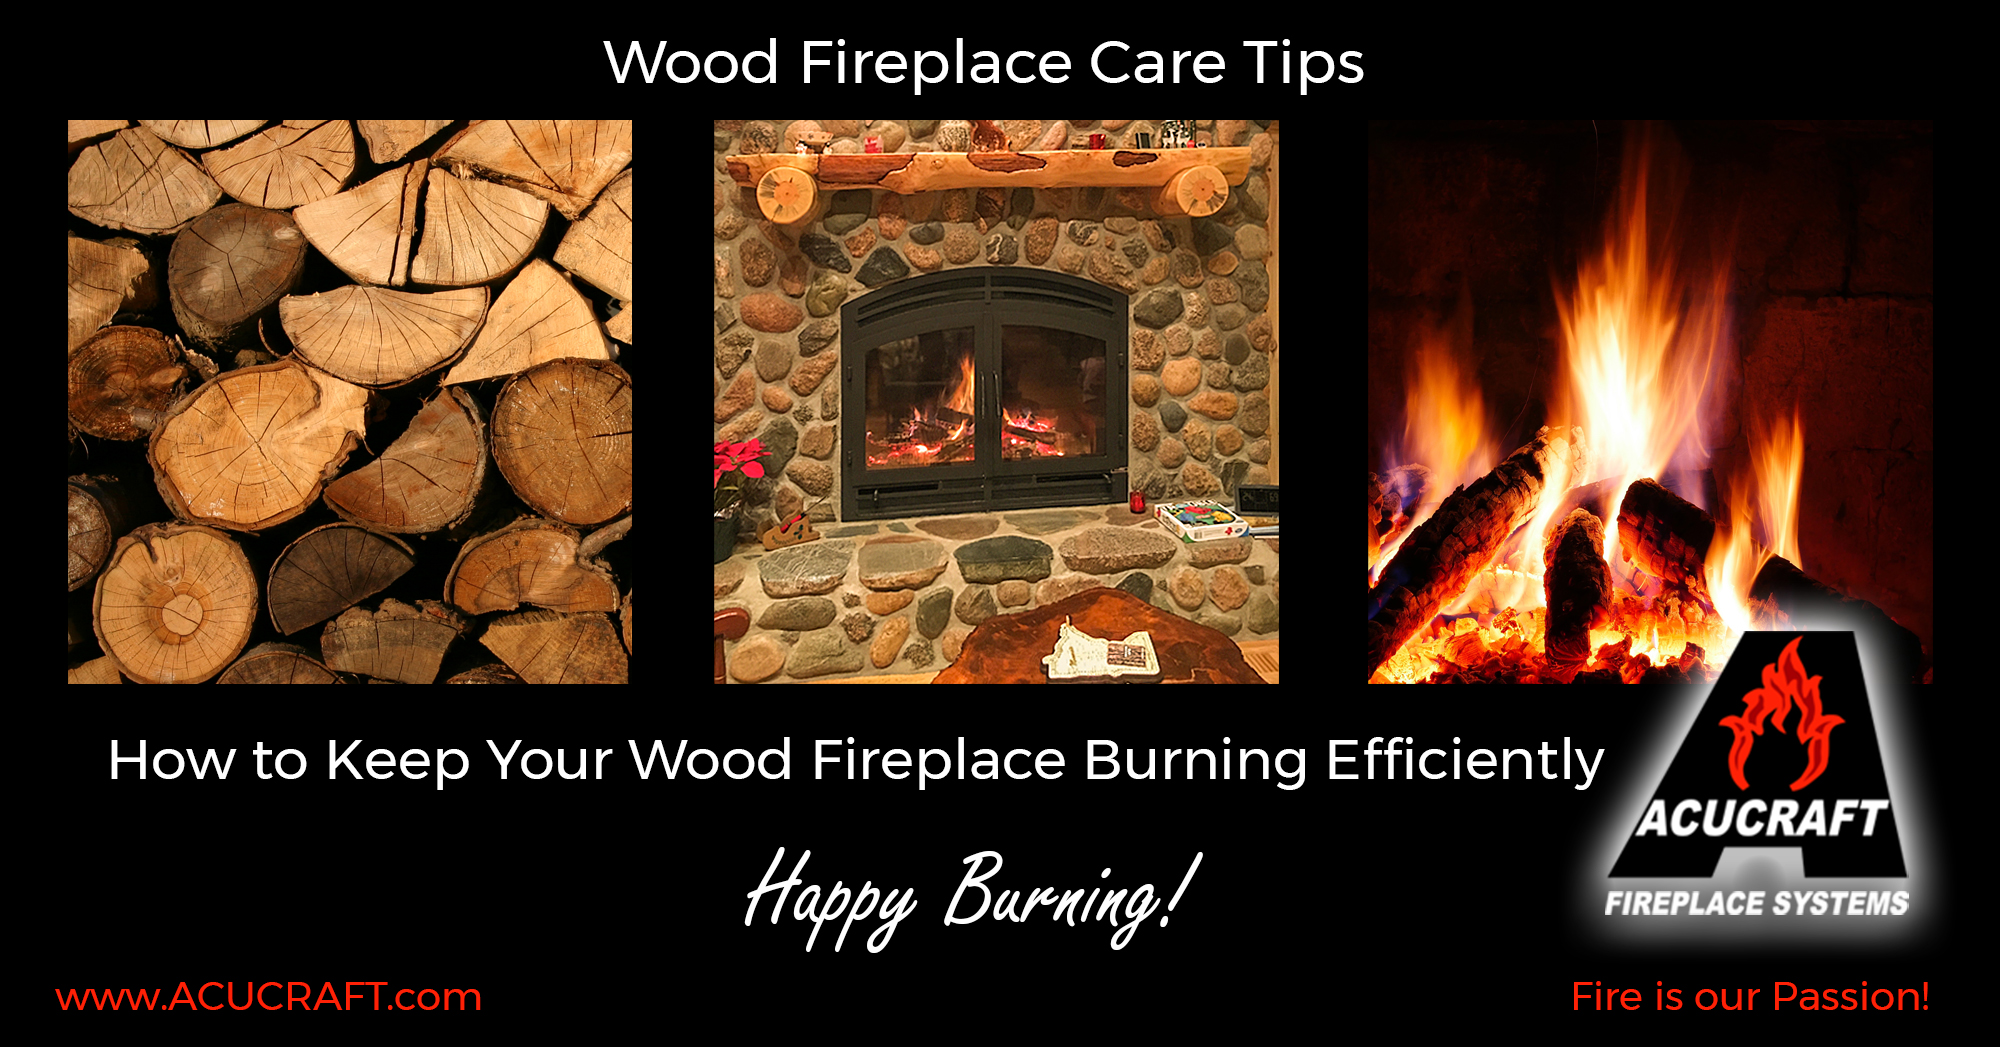 Wood Fireplace Care Tips